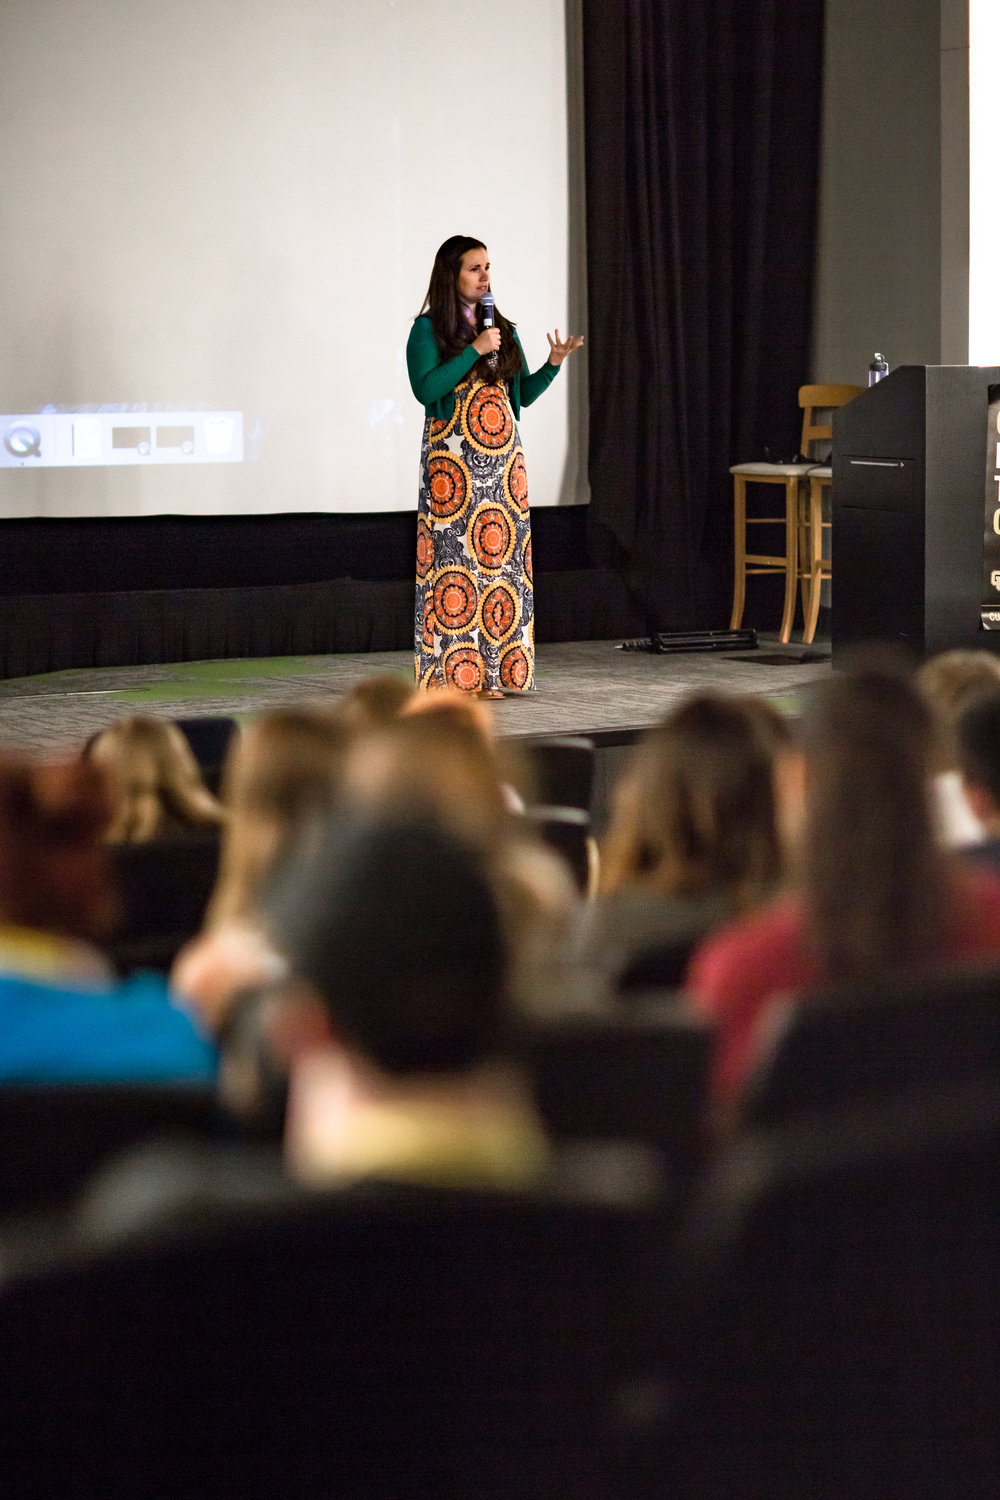 Sarah speaking to high school students at CU Denver LYnx arts camp program -